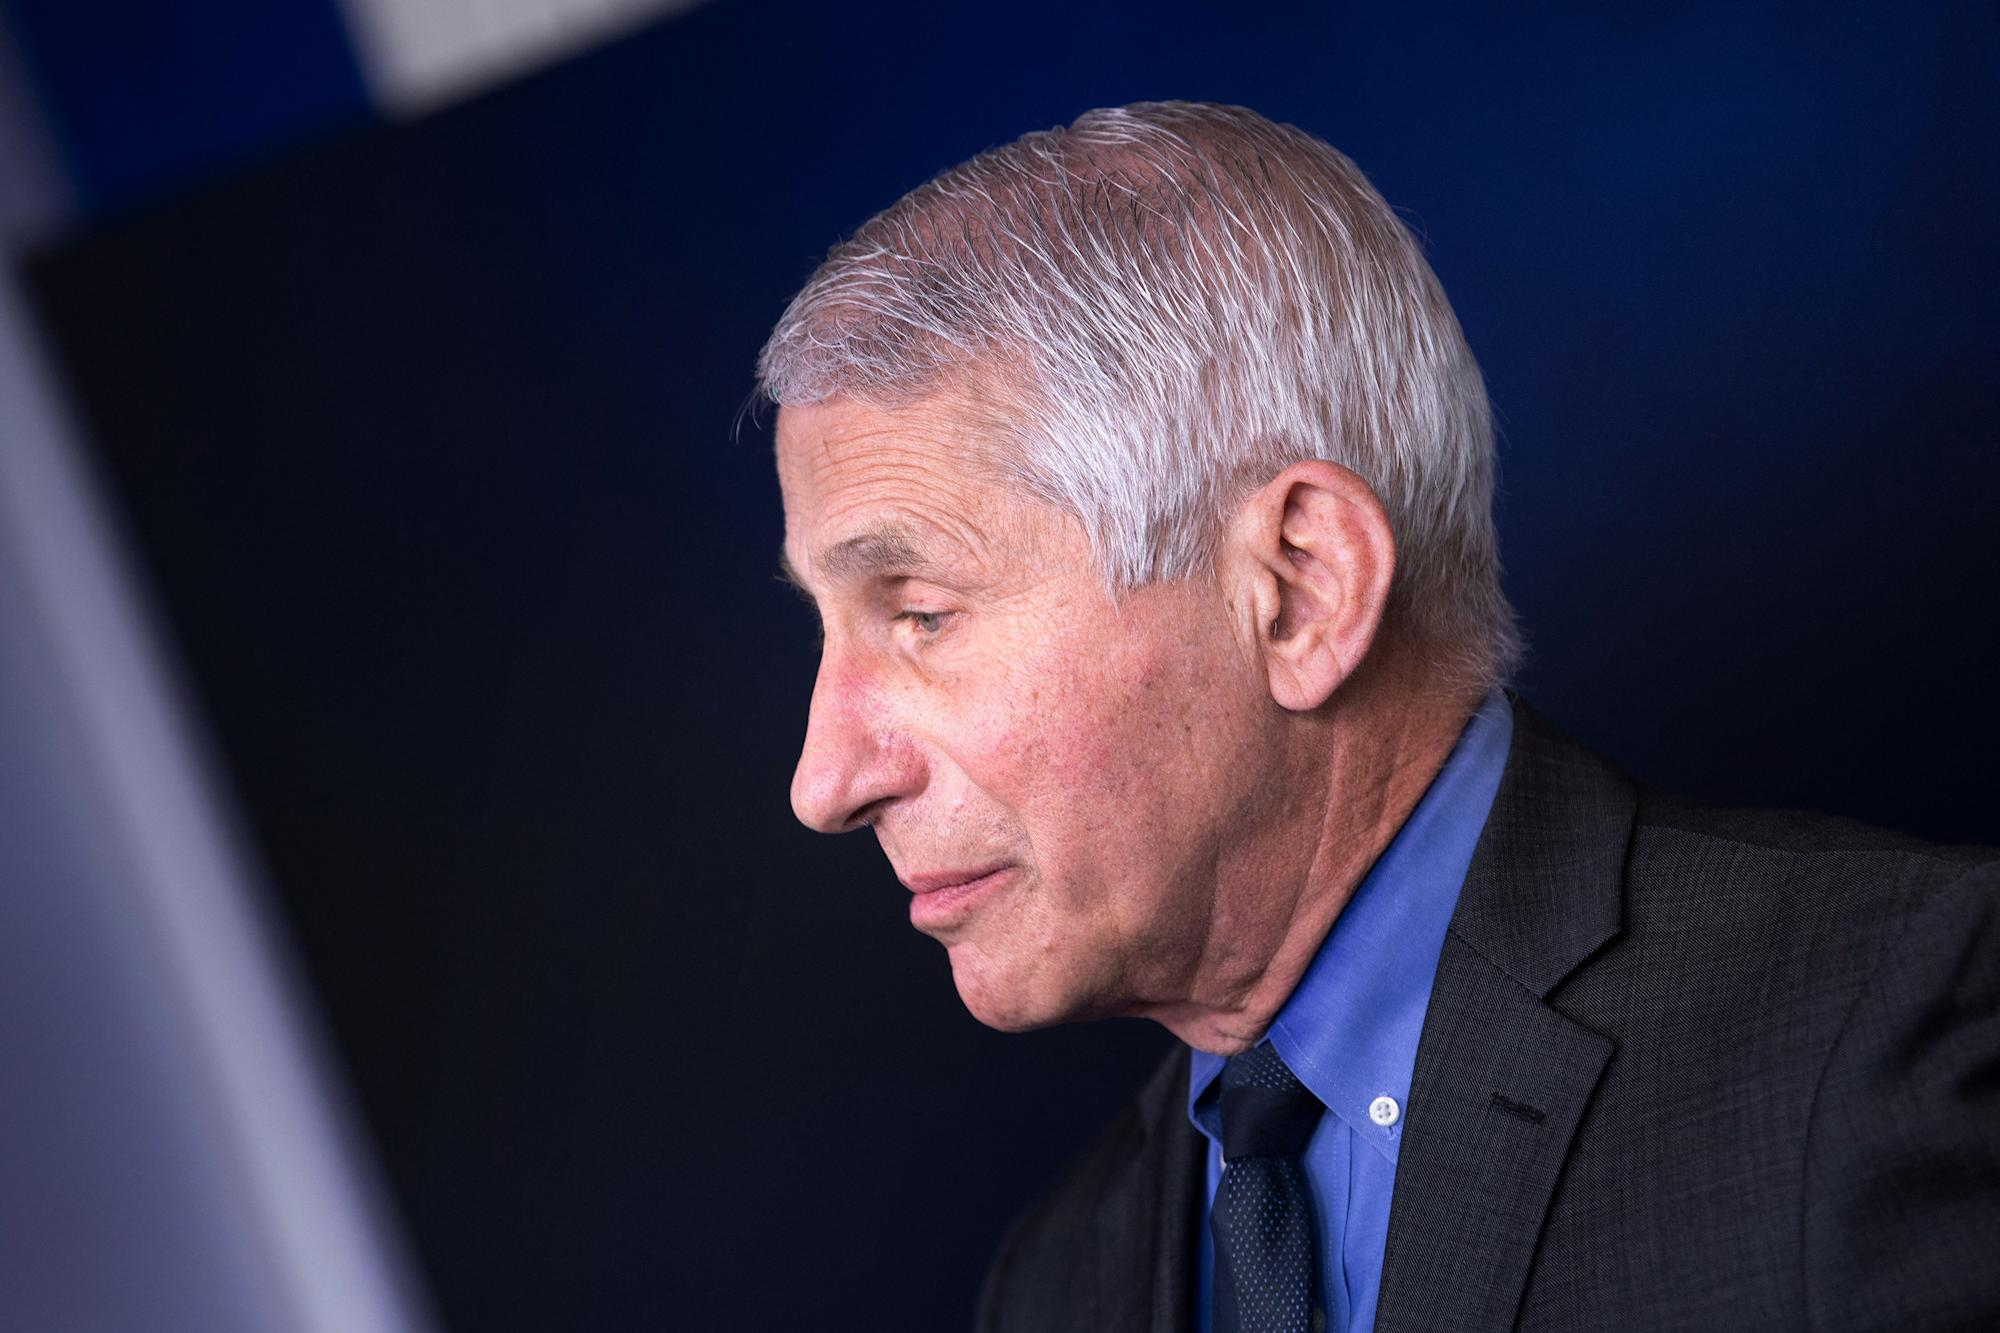 Republican anger with Dr. Fauci reaches new heights